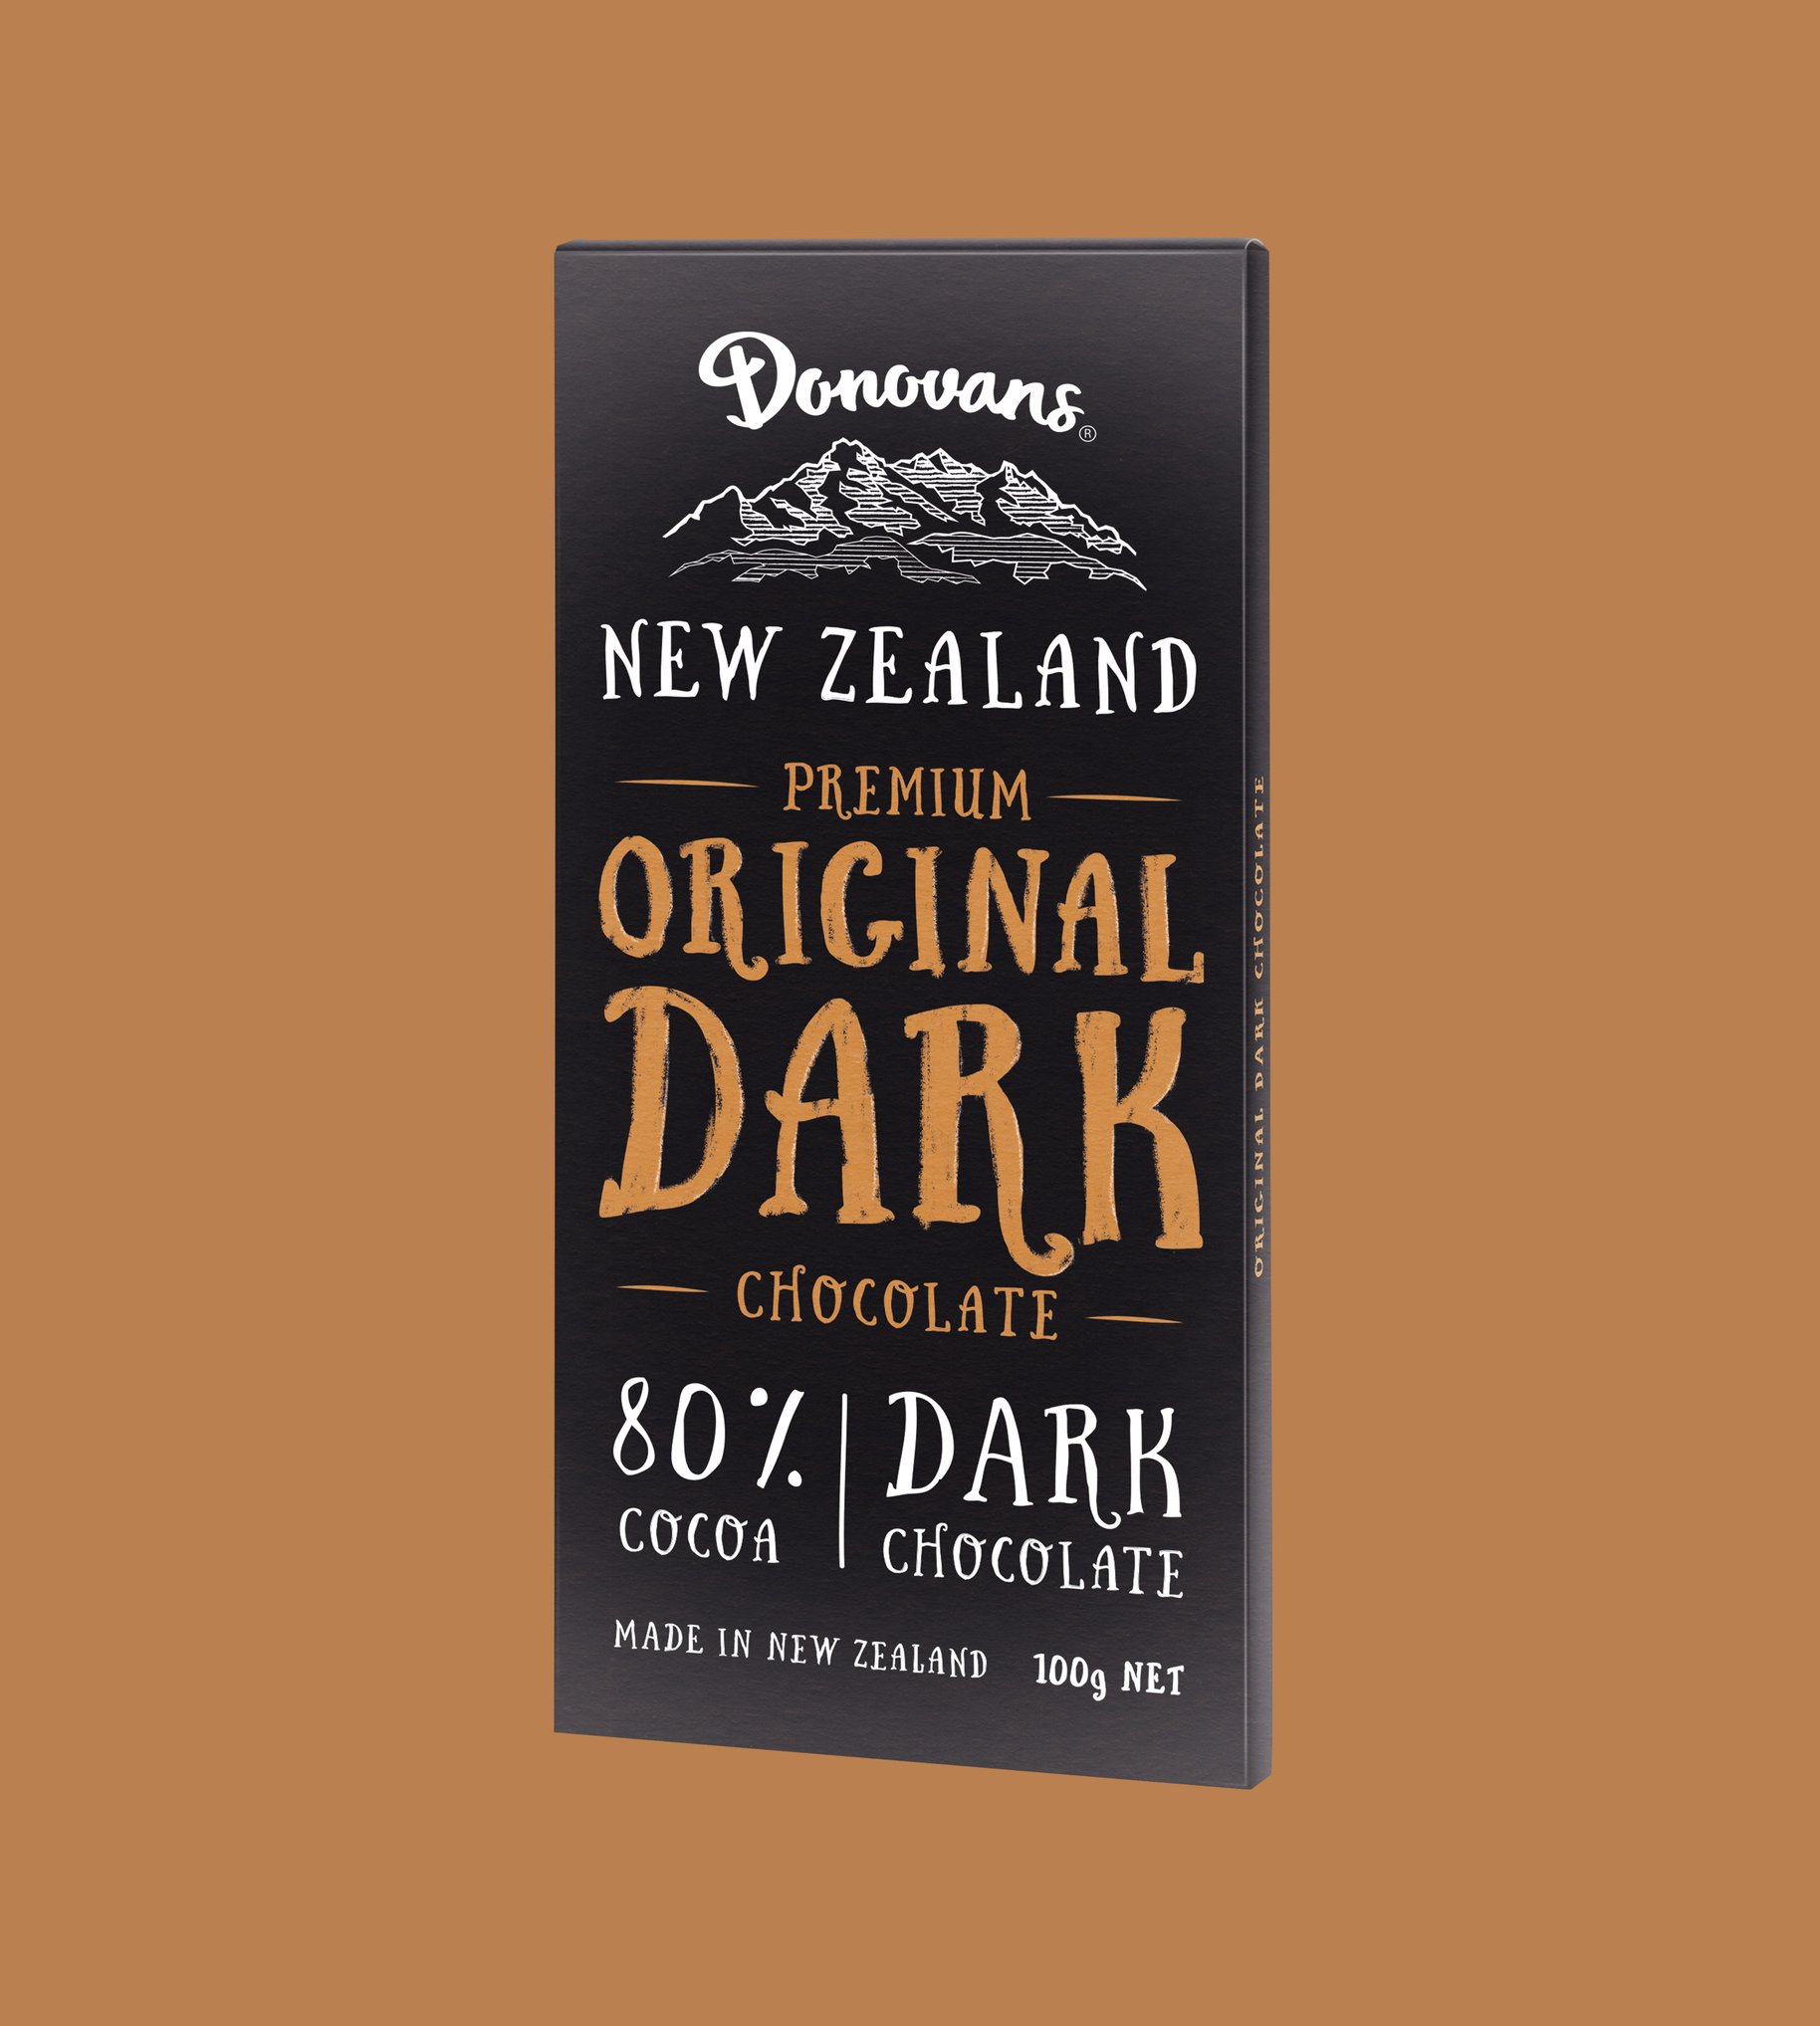 Donovans Chocolate Original dark block packaging